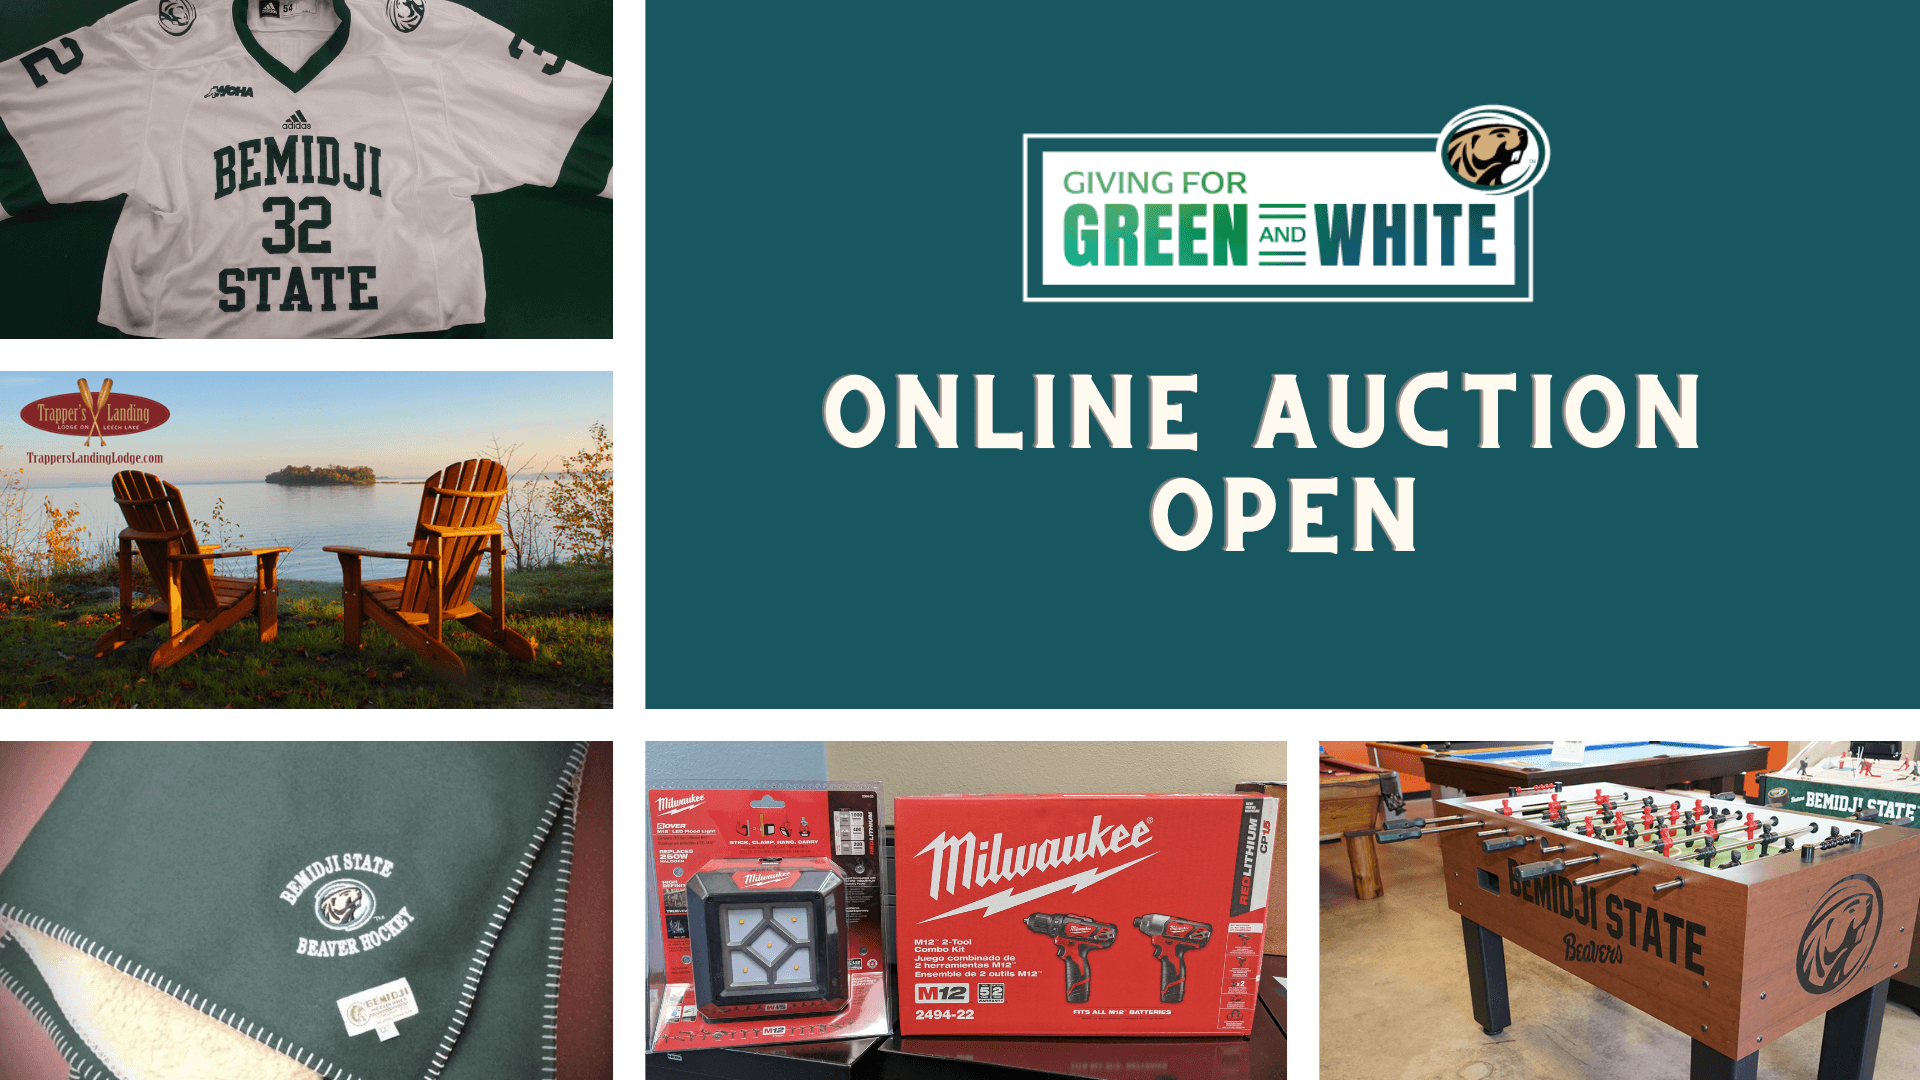 Online Auction Open v2